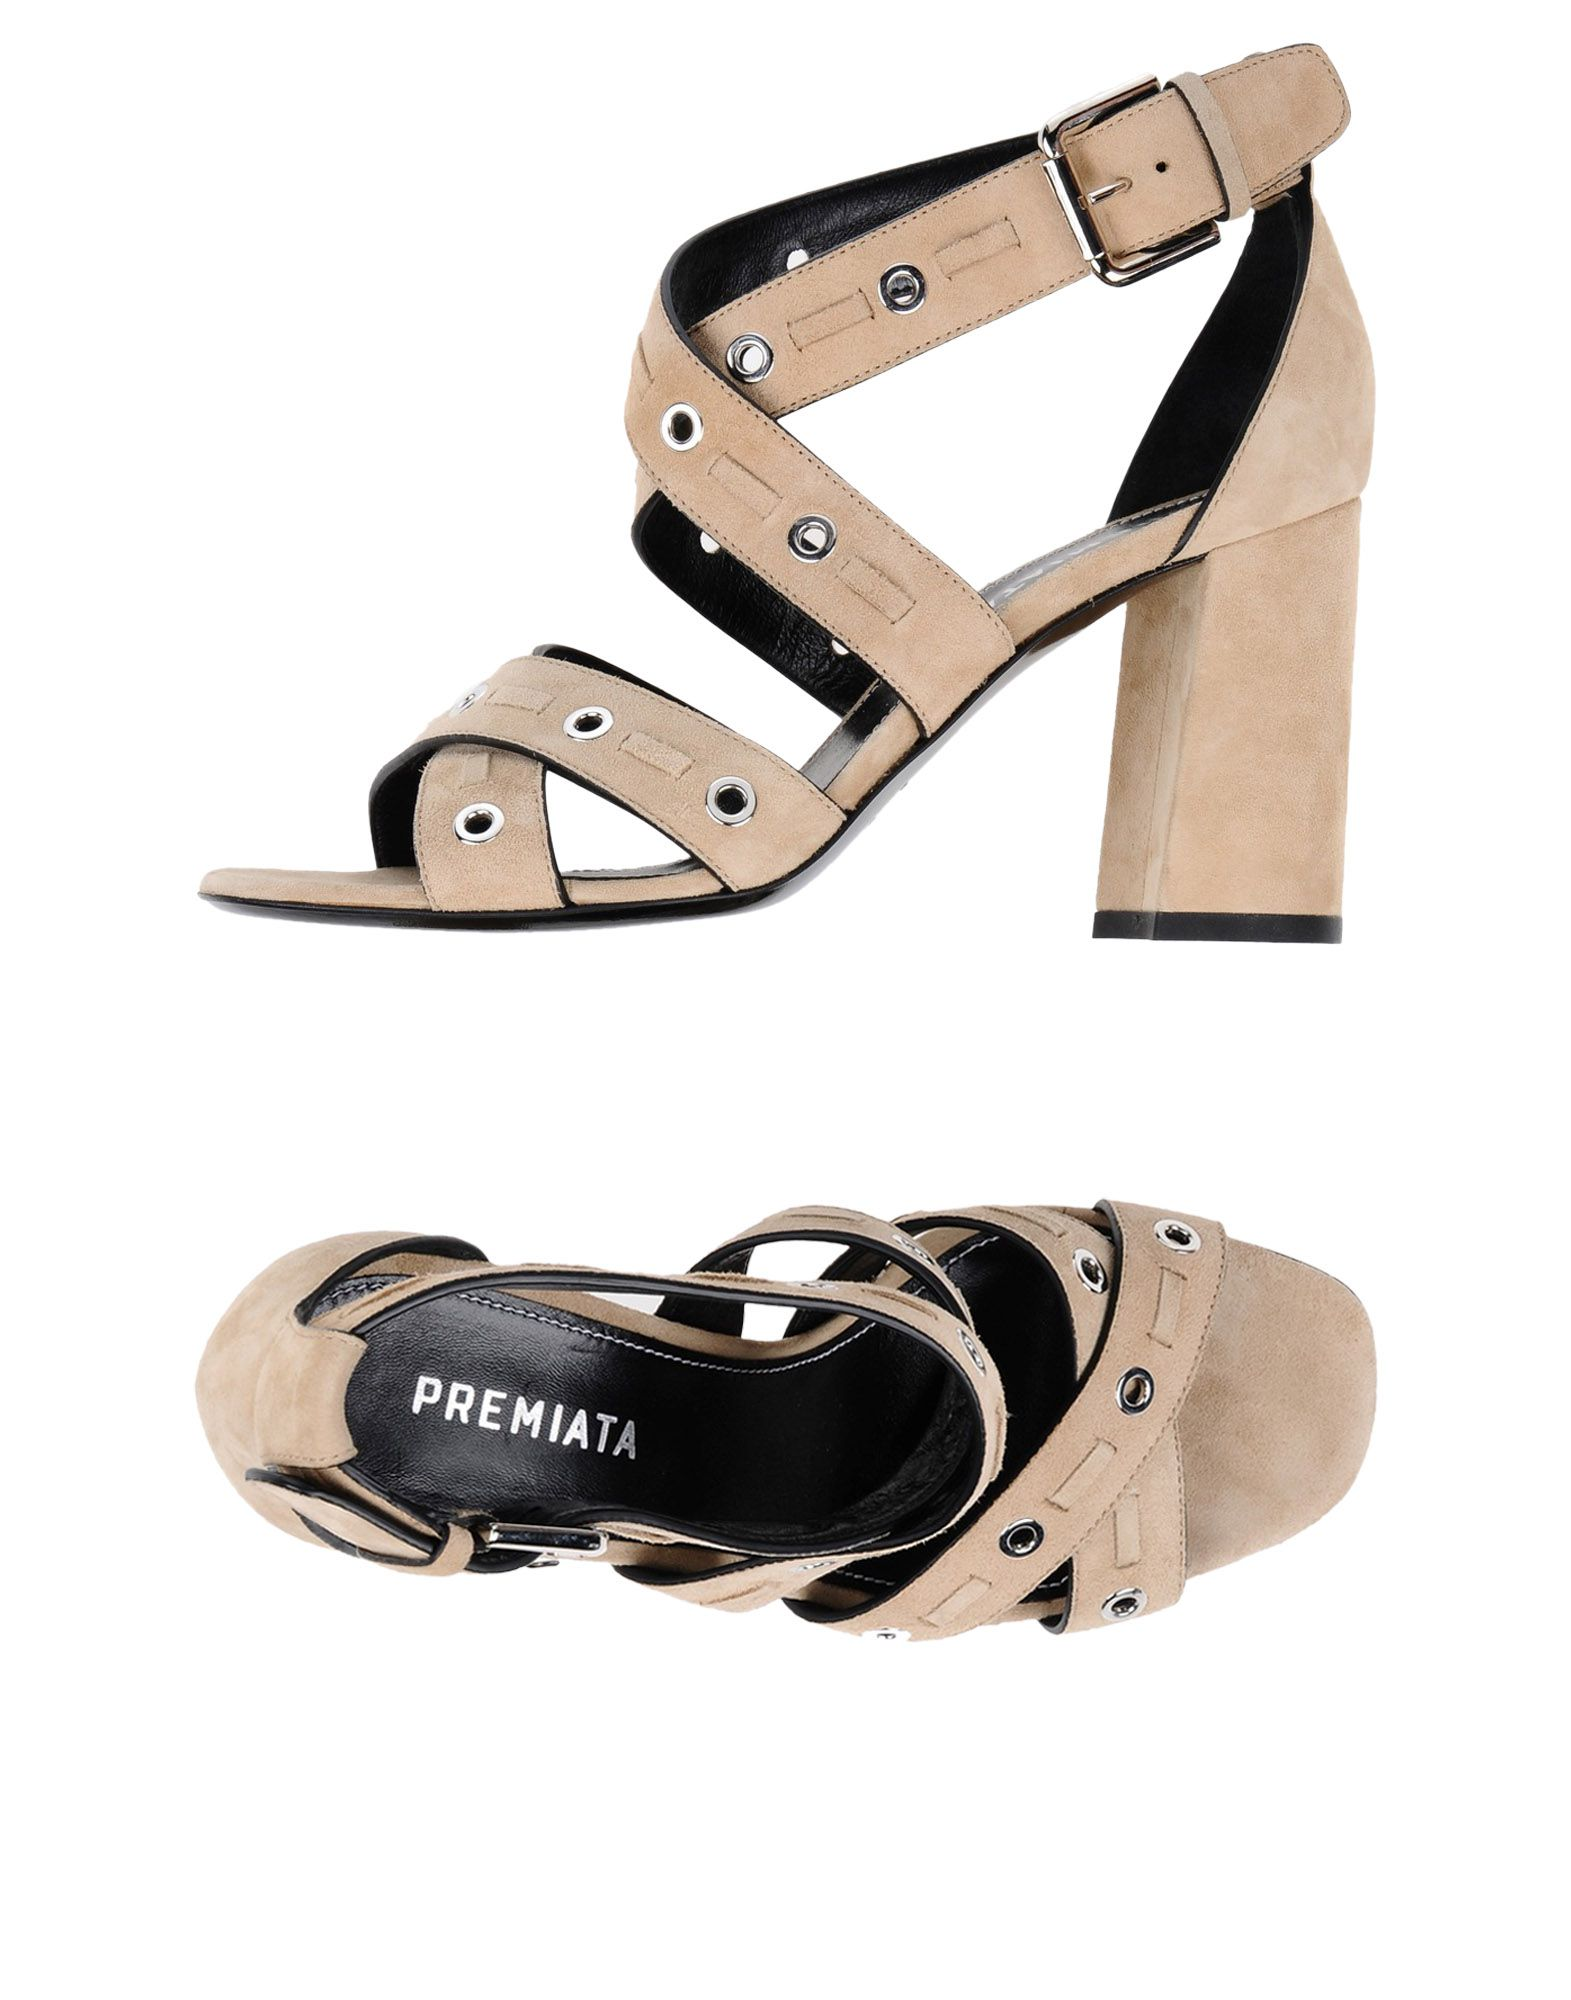 Premiata Women Spring-Summer and Fall-Winter Collections - Shop online at  YOOX